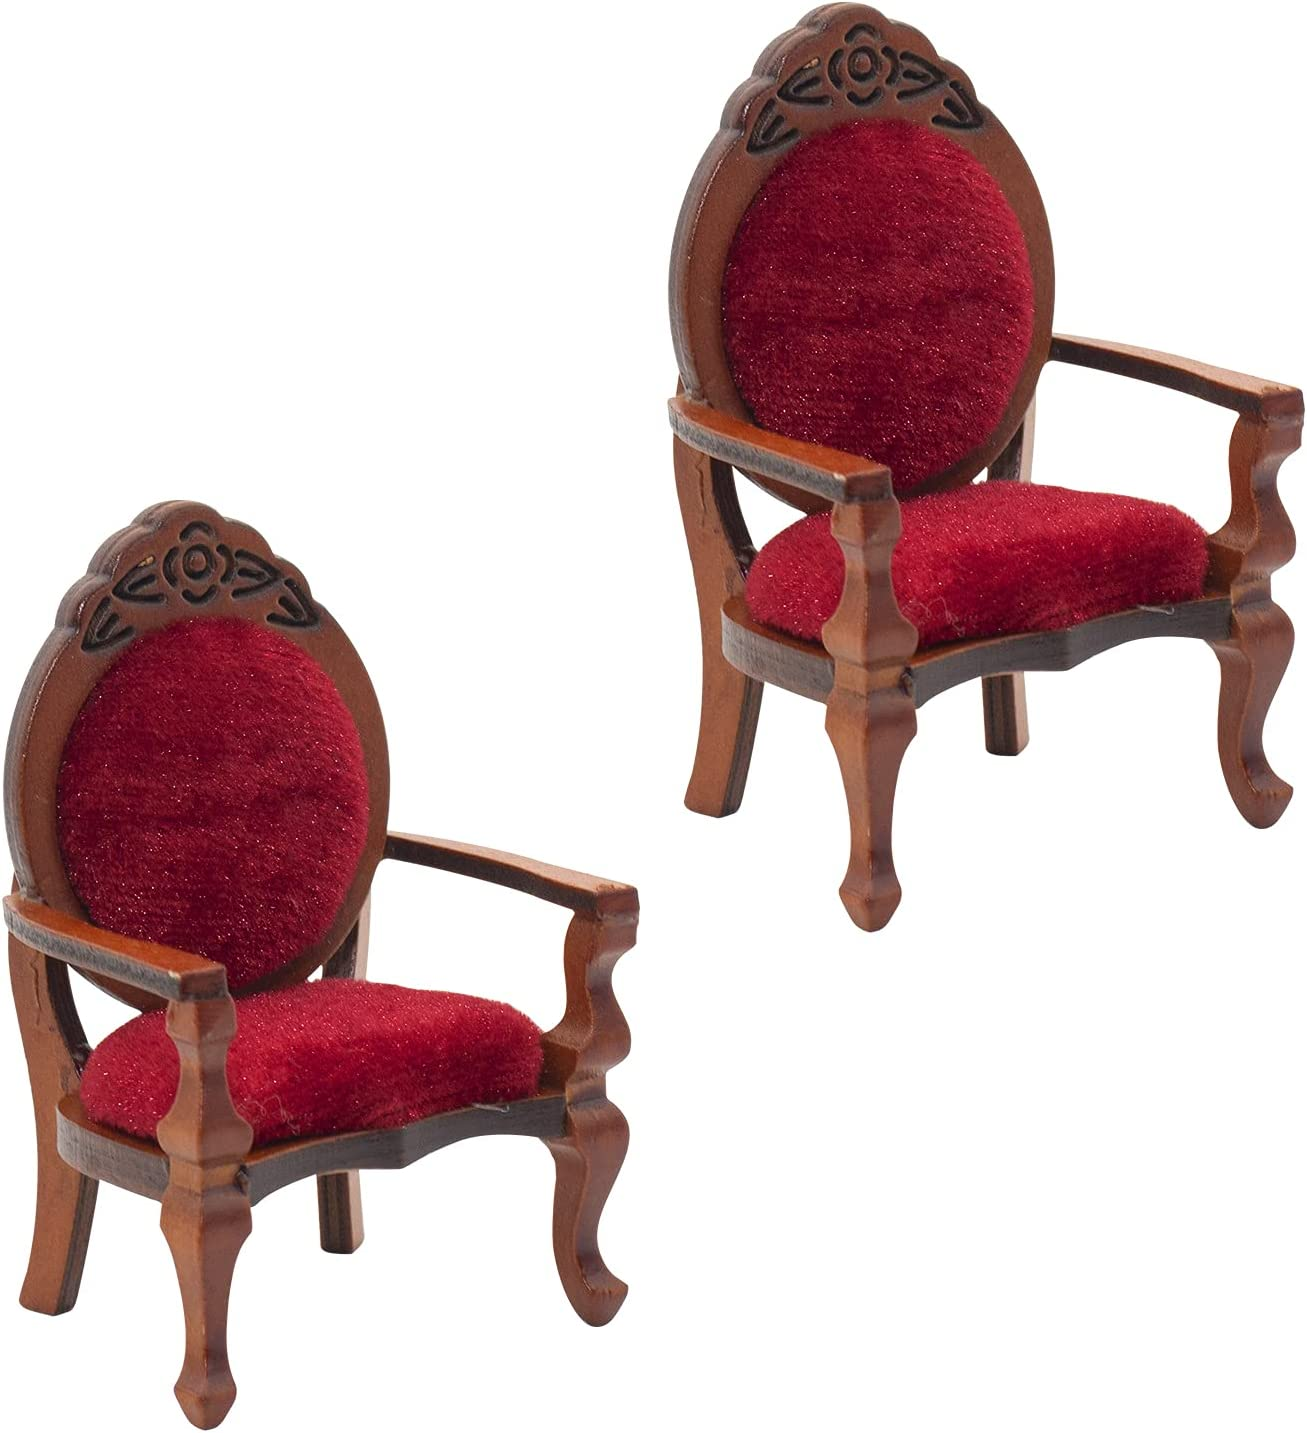 Hiawbon 2 PCS 1:12 Miniature Dollhouse Furniture Wooden Carved Single Sofa Chairs Vintage Red Armchairs for Dollhouse Accessories Furniture Decoration Birthday